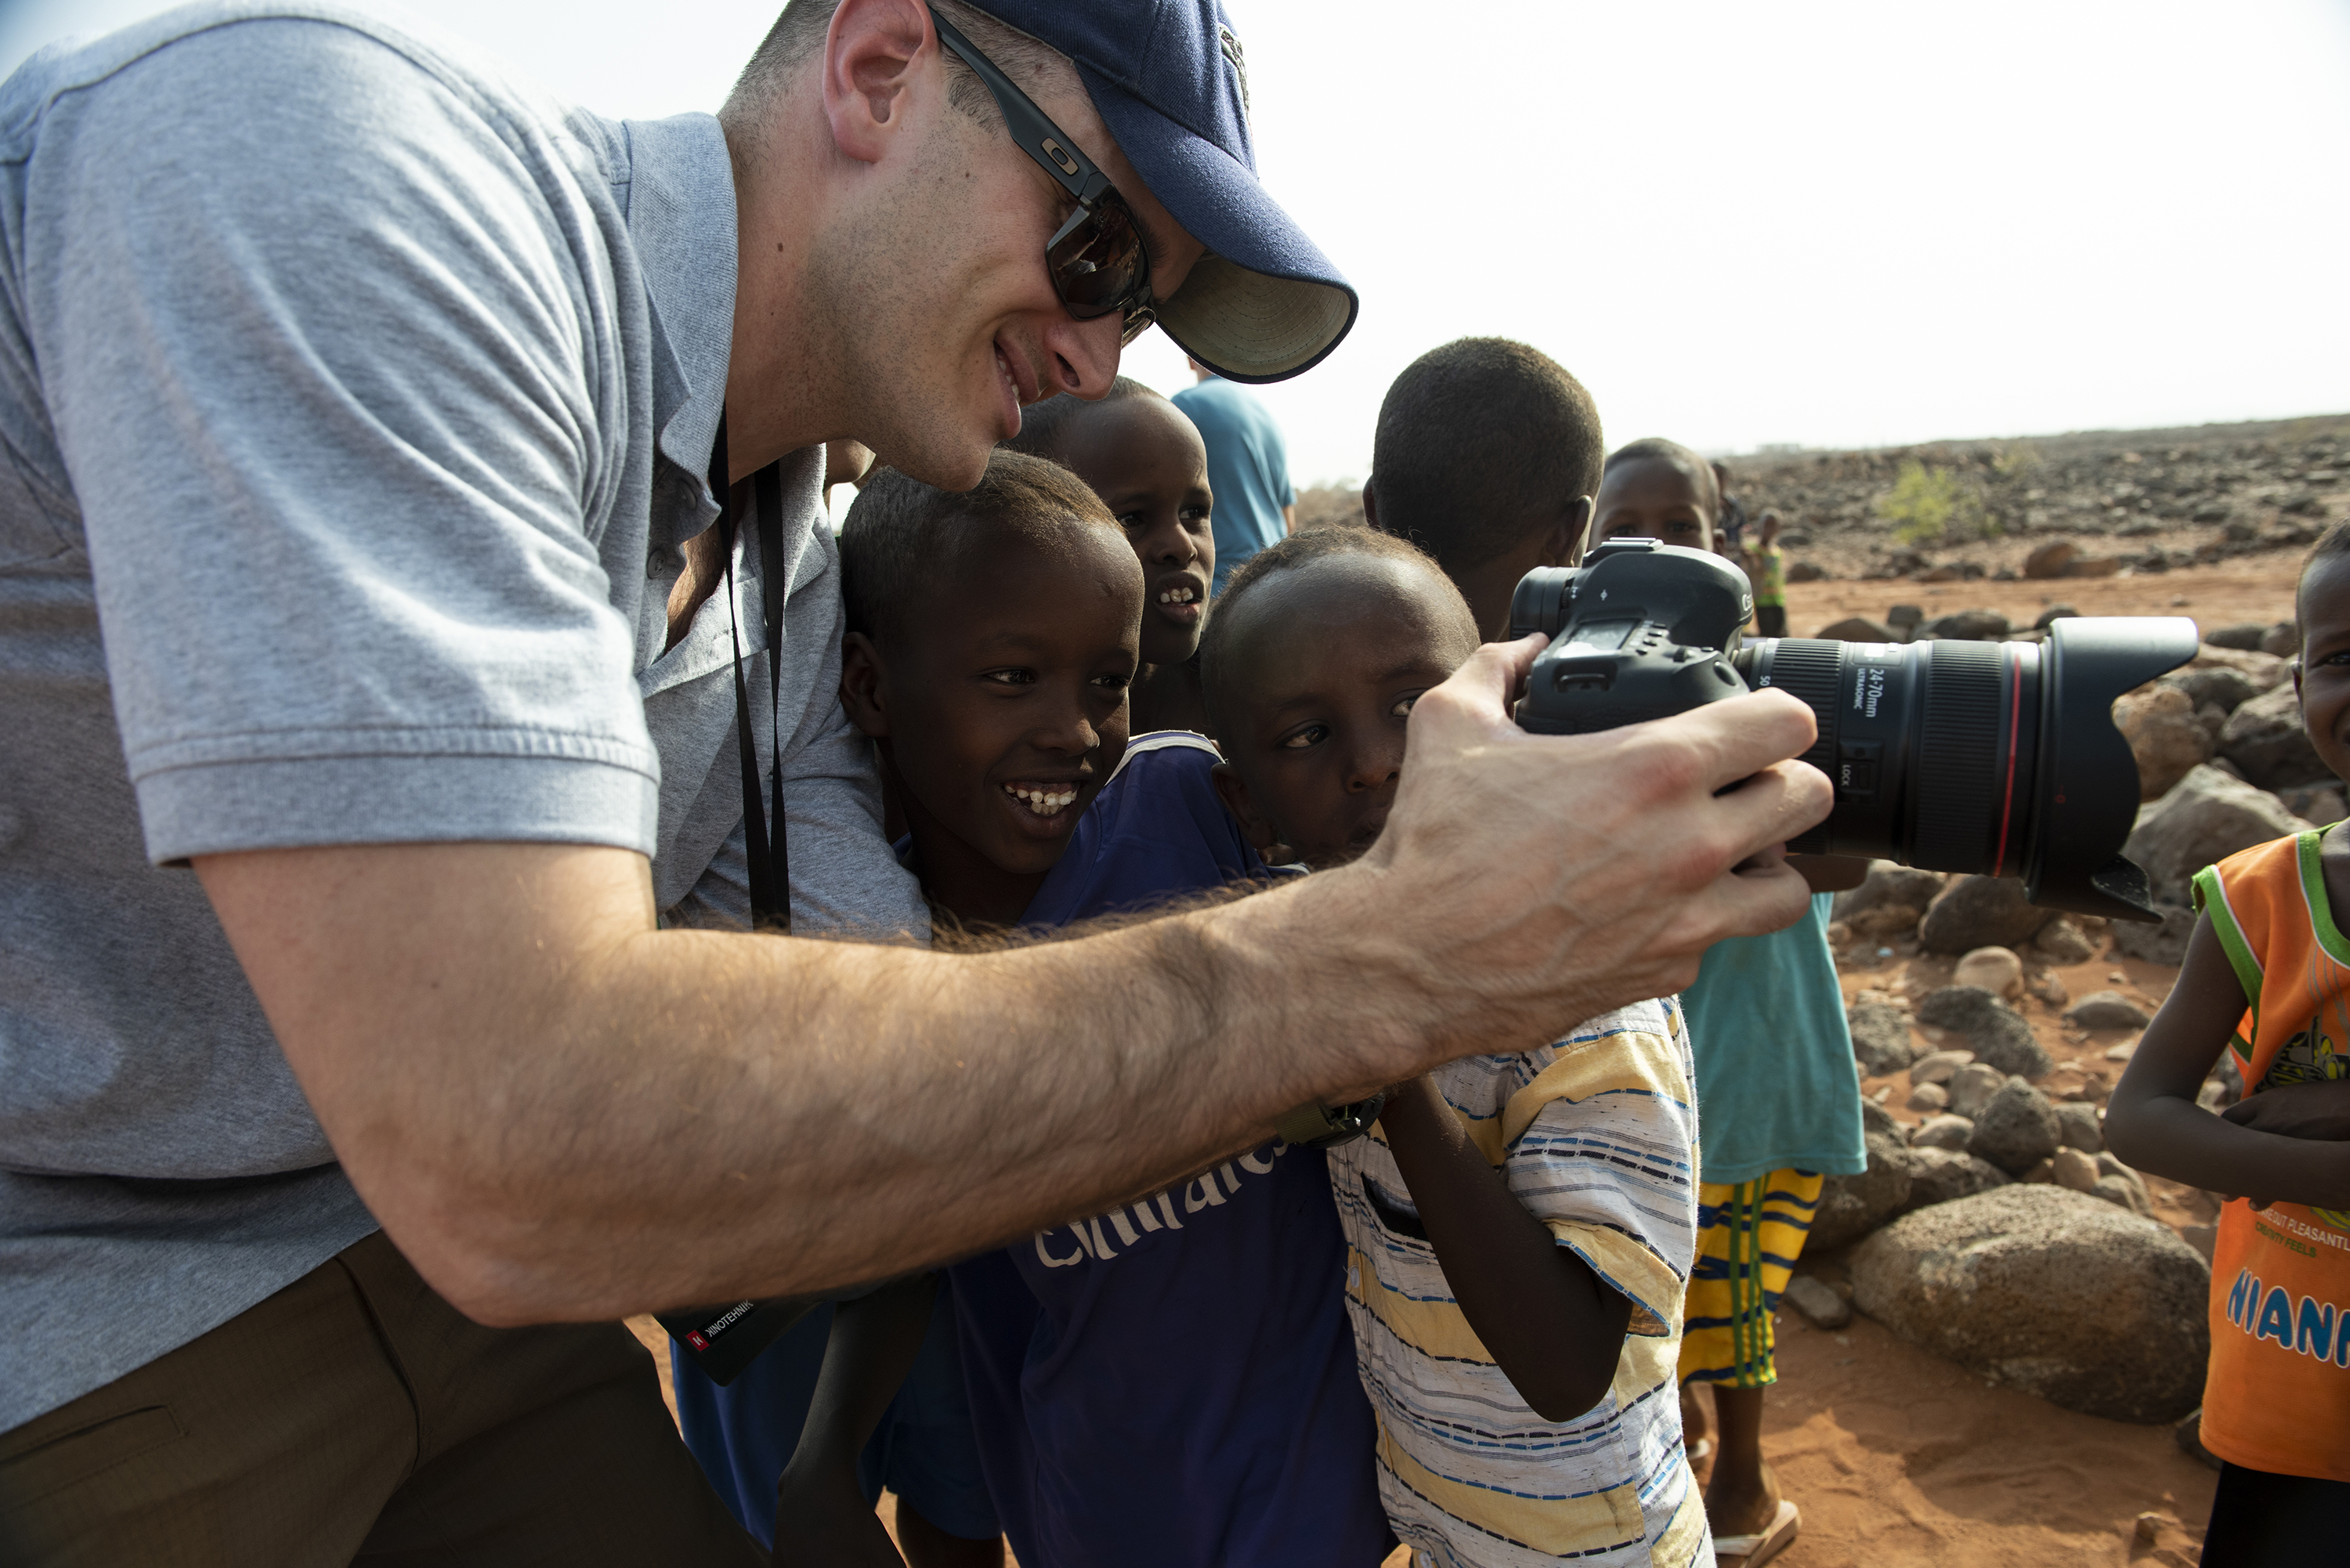 U.S. Air Force Master Sgt. Andrew Sinclair, broadcaster, Combined Joint Task Force - Horn of Africa, public affairs, demonstrates how to use his camera to Djiboutian children, outside of Chebelley Village, Djibouti, Aug. 3, 2018. Sinclair was there to document a soccer game in which U.S. Service members teamed up with children from the nearby village as part of a community engagement event organized by the 404th Civil Affairs Battalion. (U.S. Air National Guard photo by Master Sgt. Sarah Mattison)